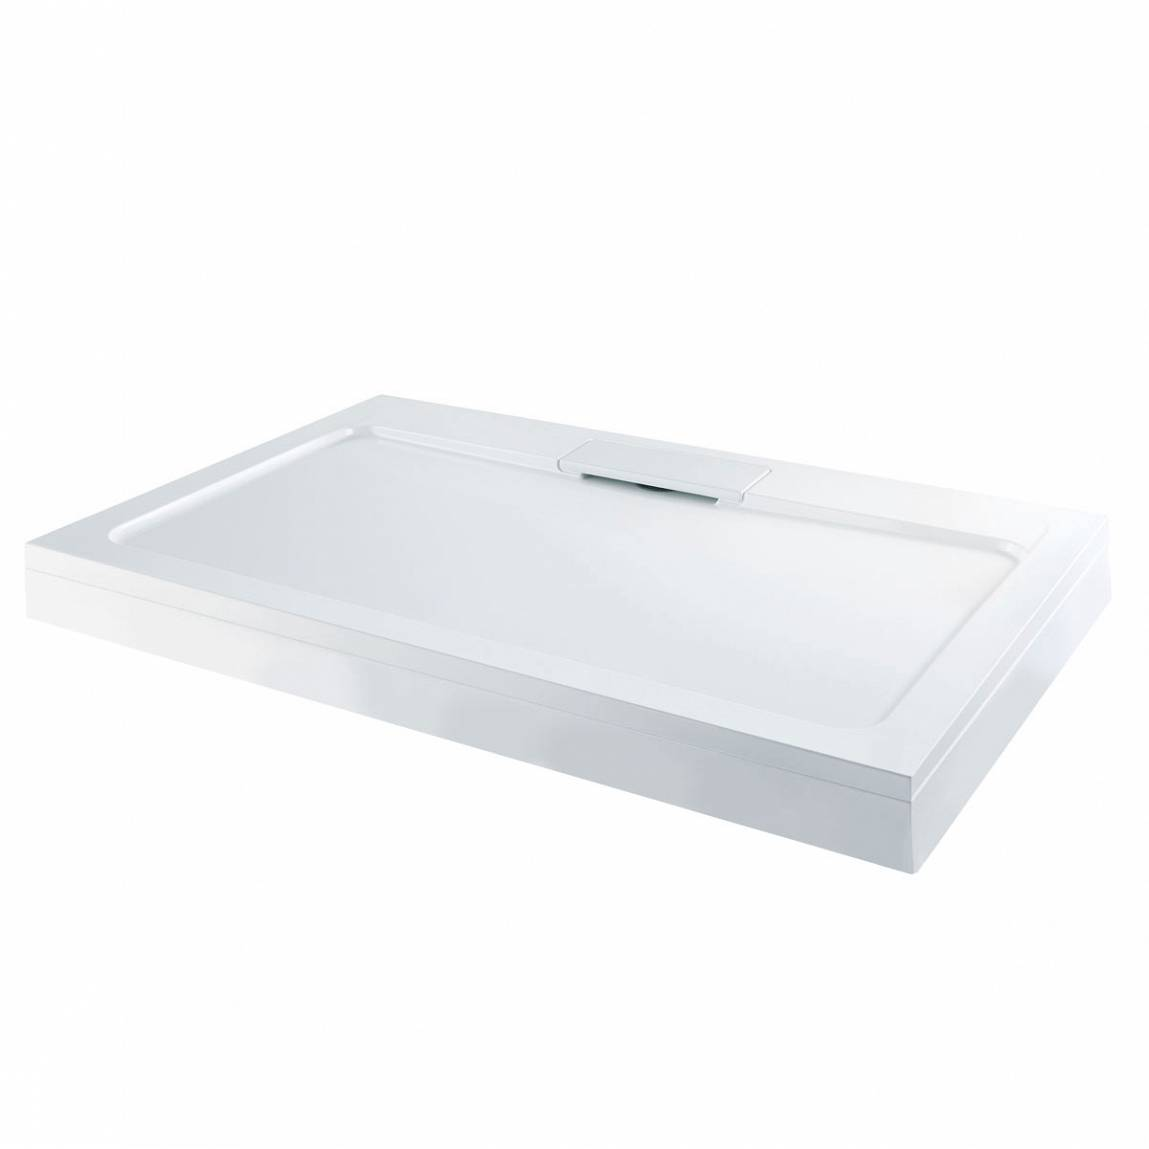 Image of Designer Rectangular Stone Shower Tray & Riser Kit 1200 x 800